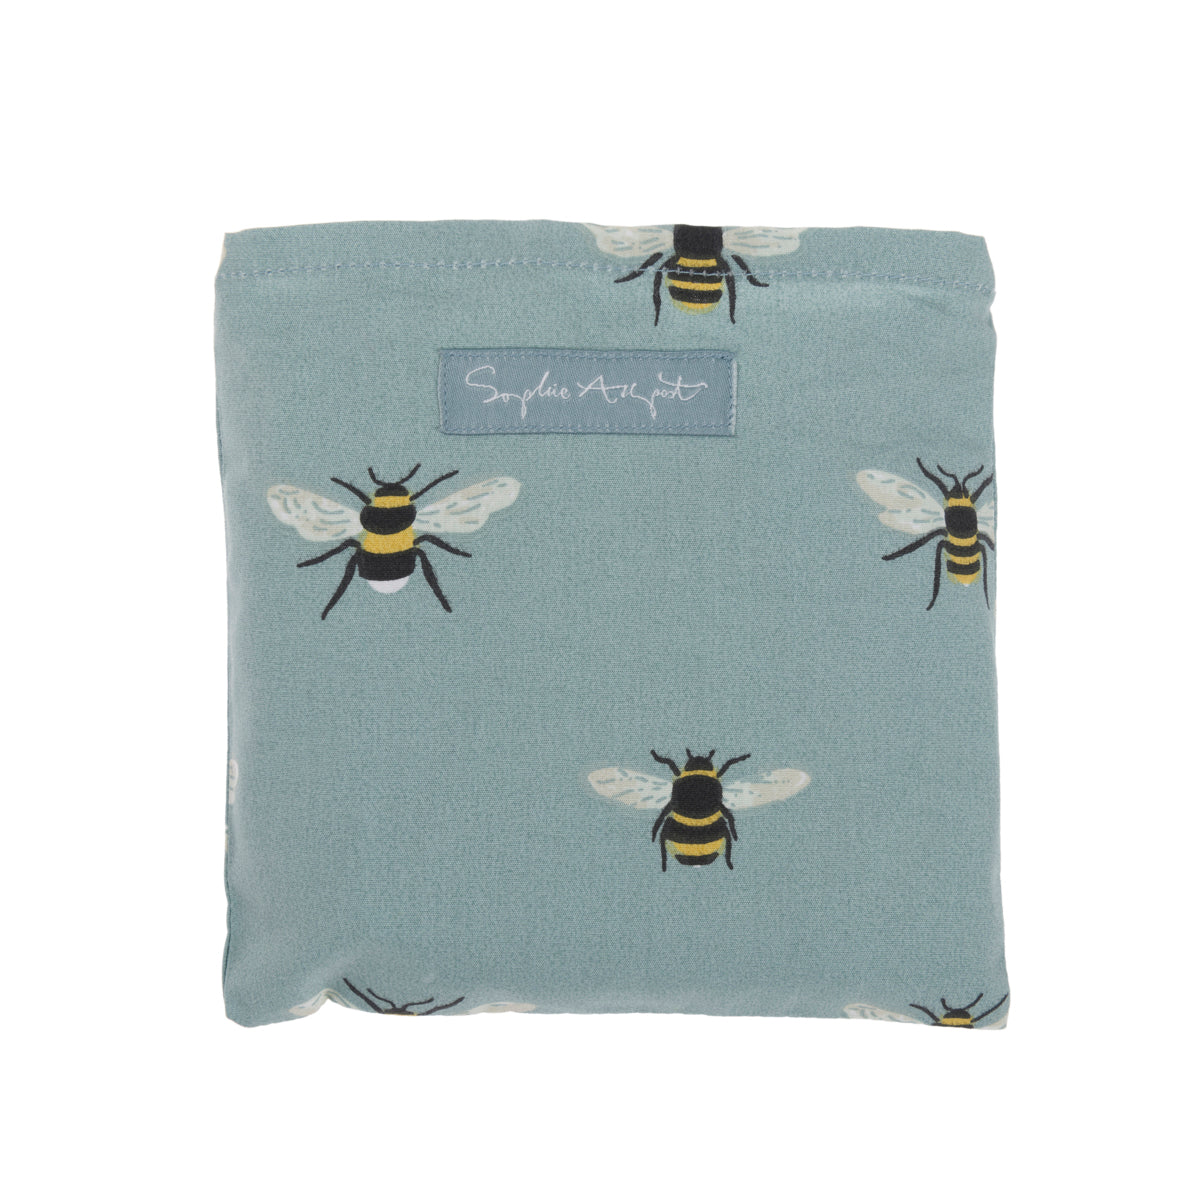 Bees Teal Folding Practical Shopping Bag by Sophie Allport